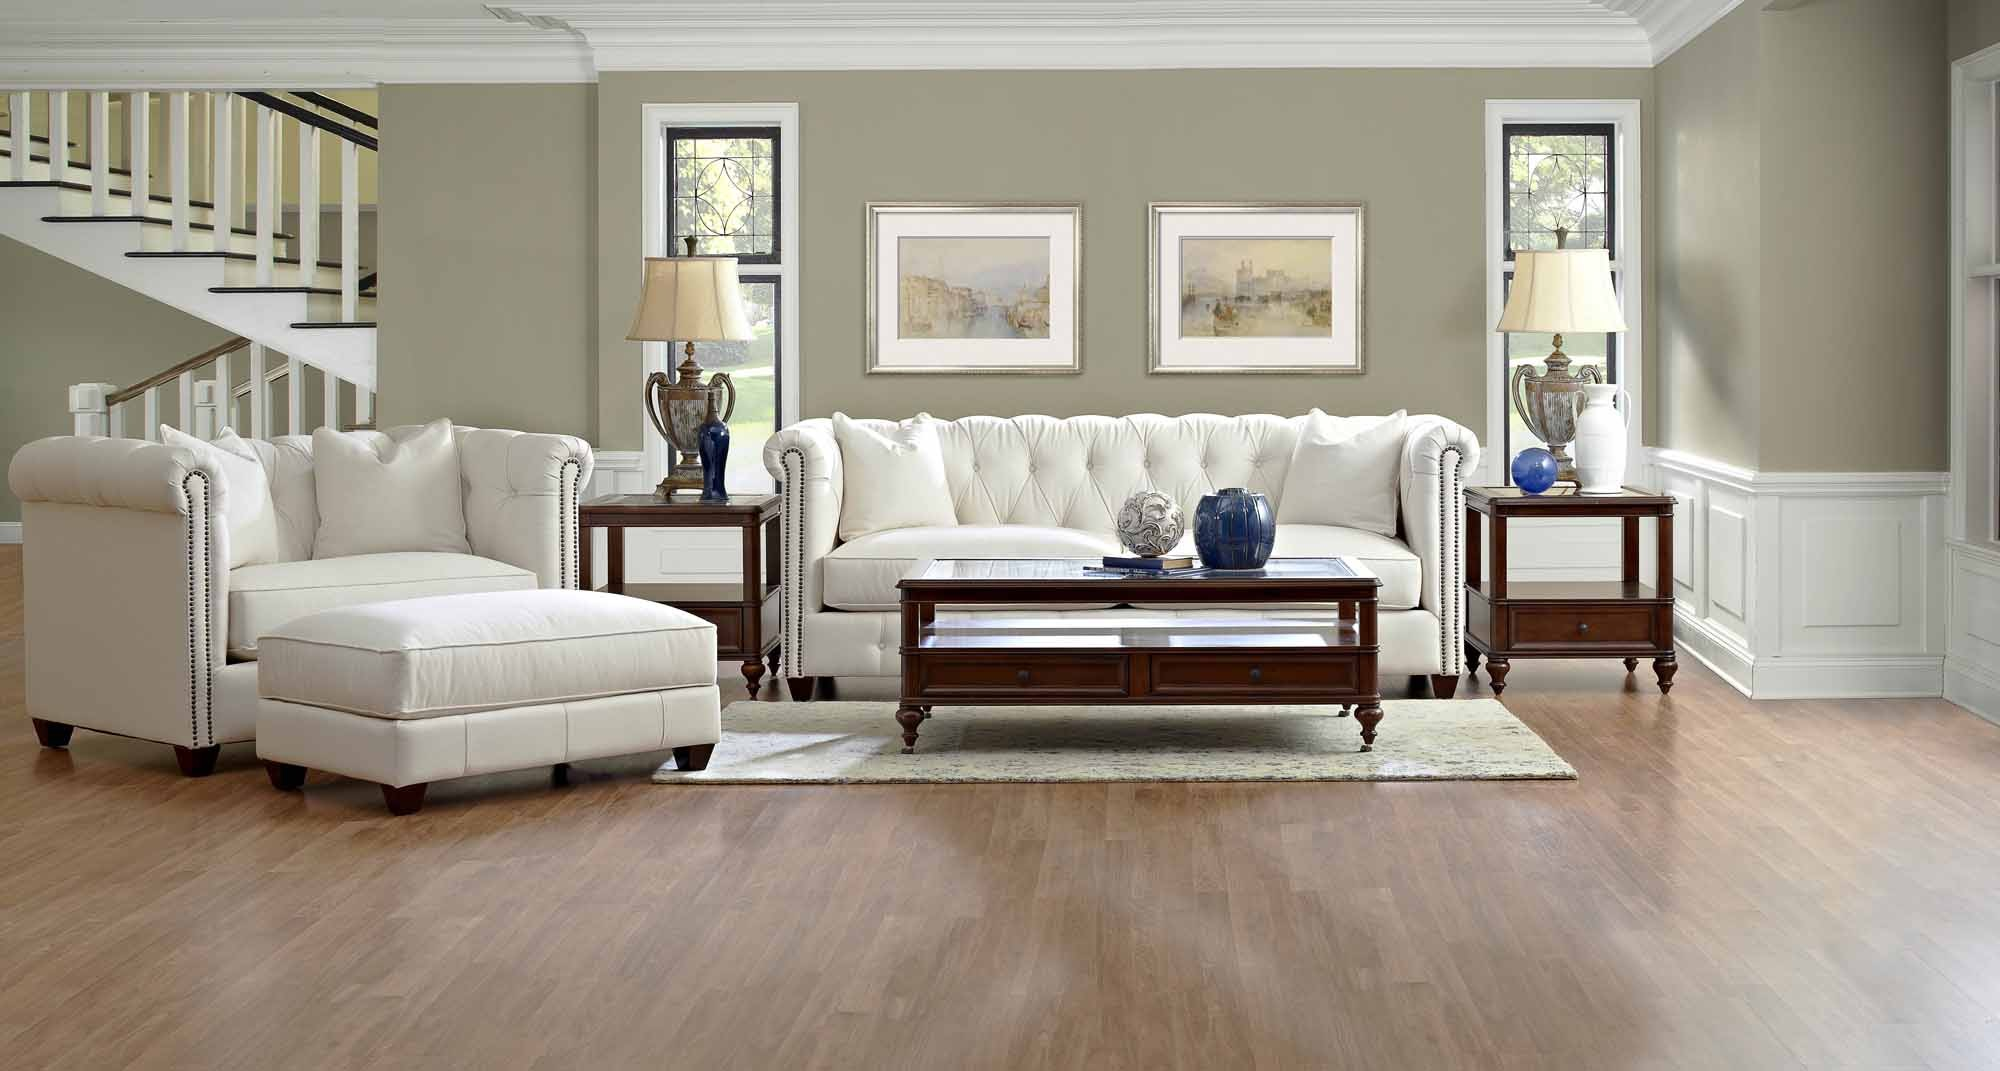 Custom Upholstery Sofa Sets from Wayfair Let you Totally